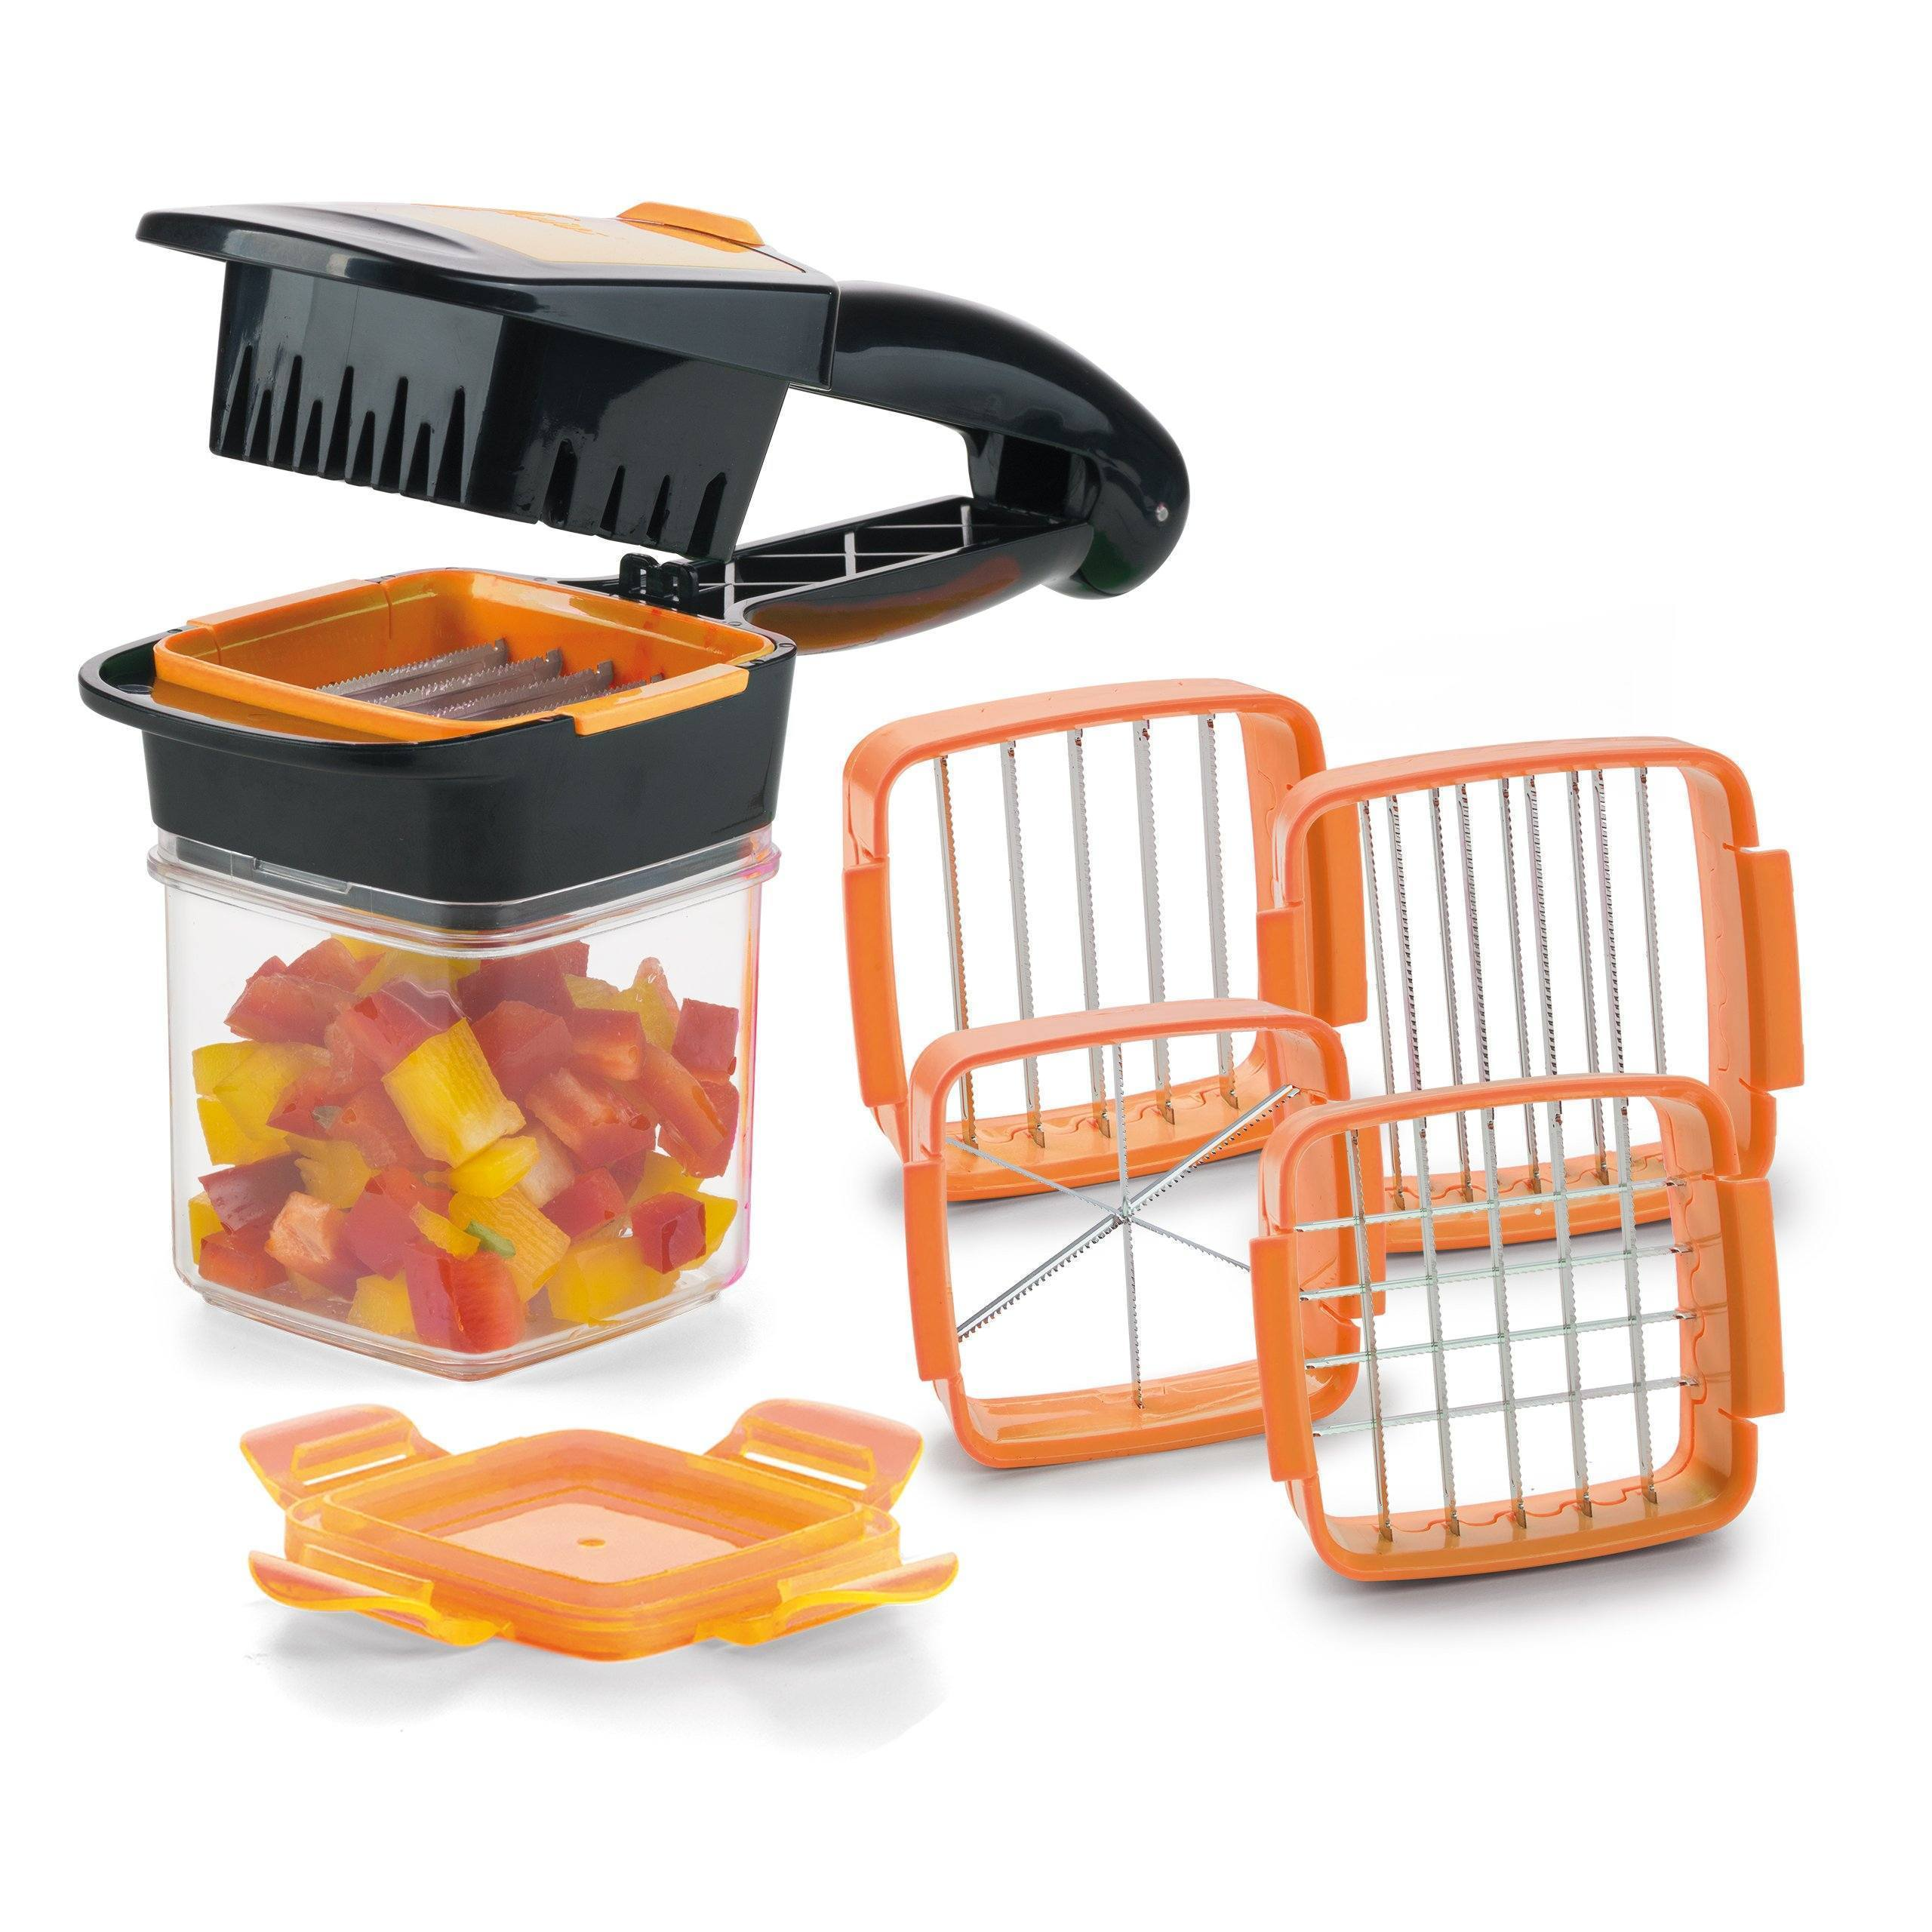 Multi-Purpose Food Cutter